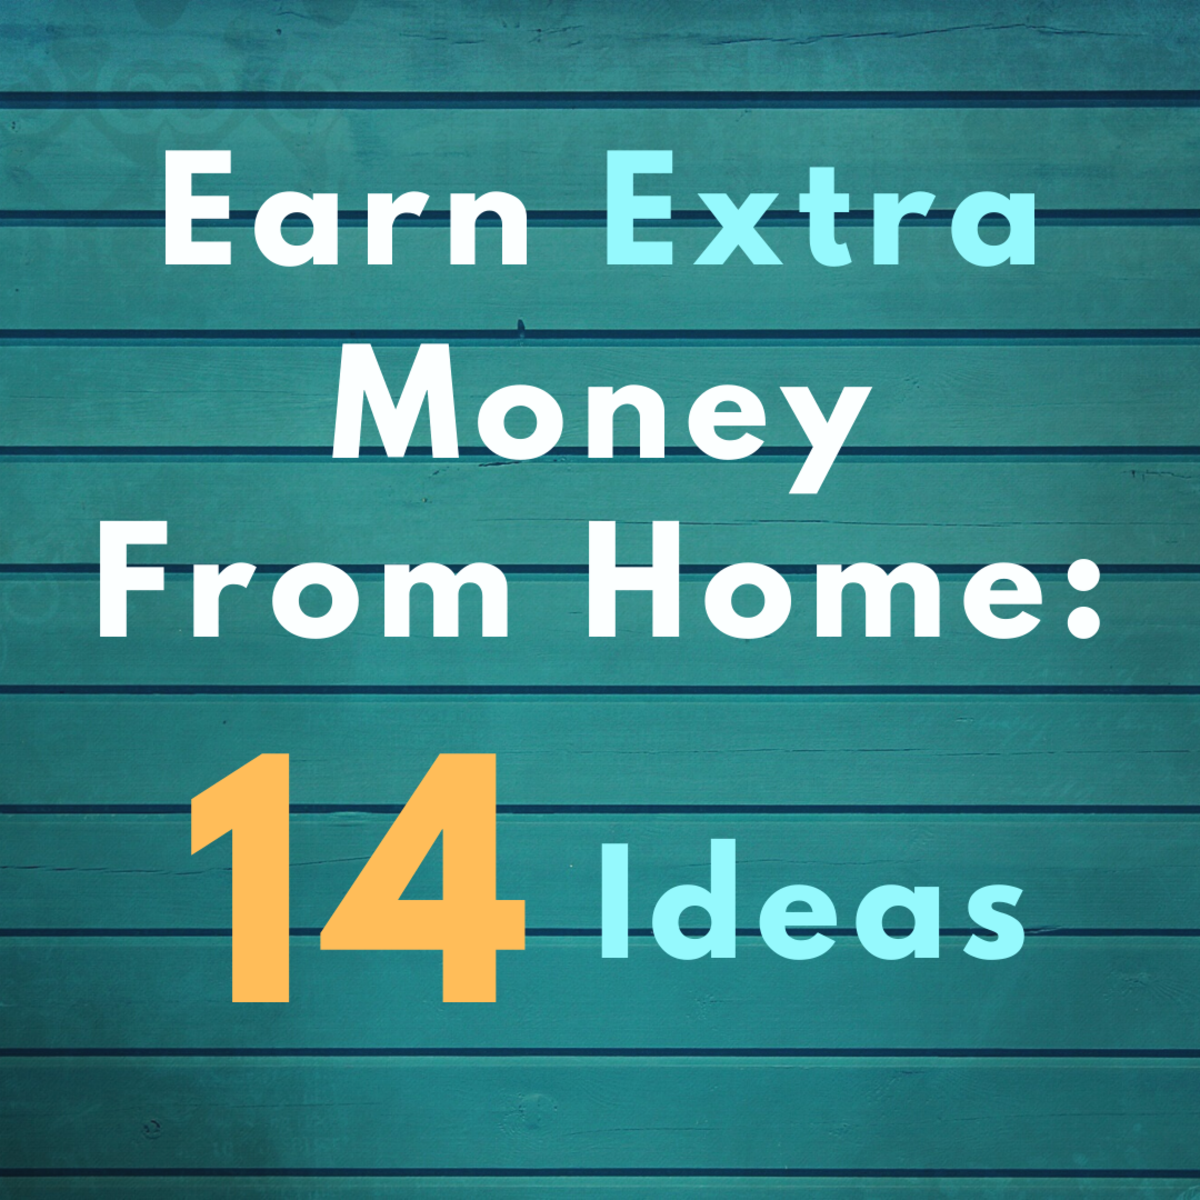 14 Ways to Earn Extra Cash From Home